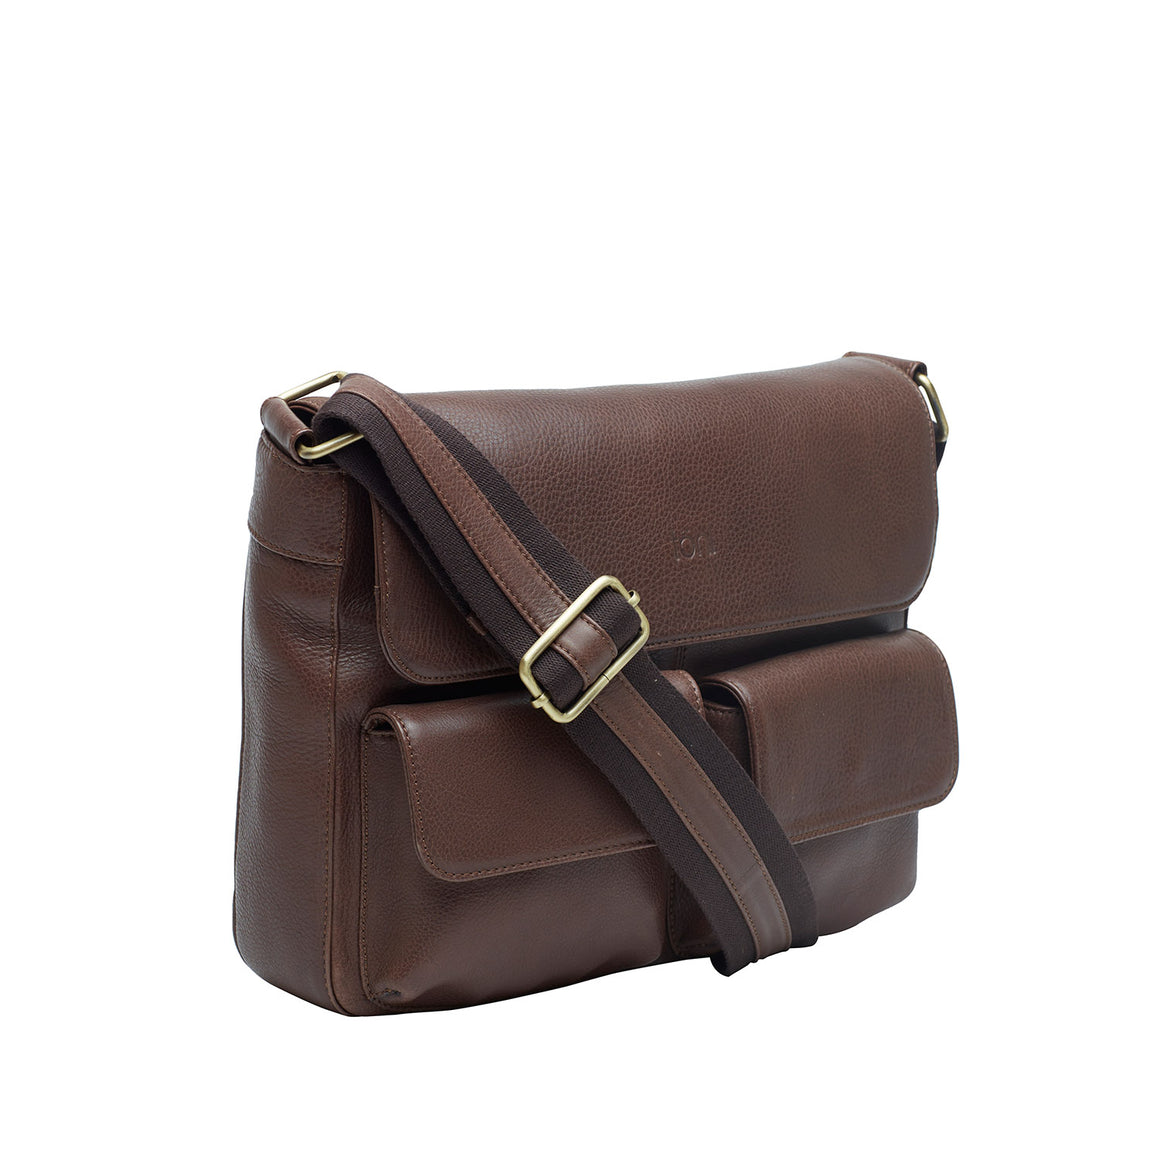 MS 0008 - TOHL PASSO MEN'S CROSSBODY & MESSENGER - MUD